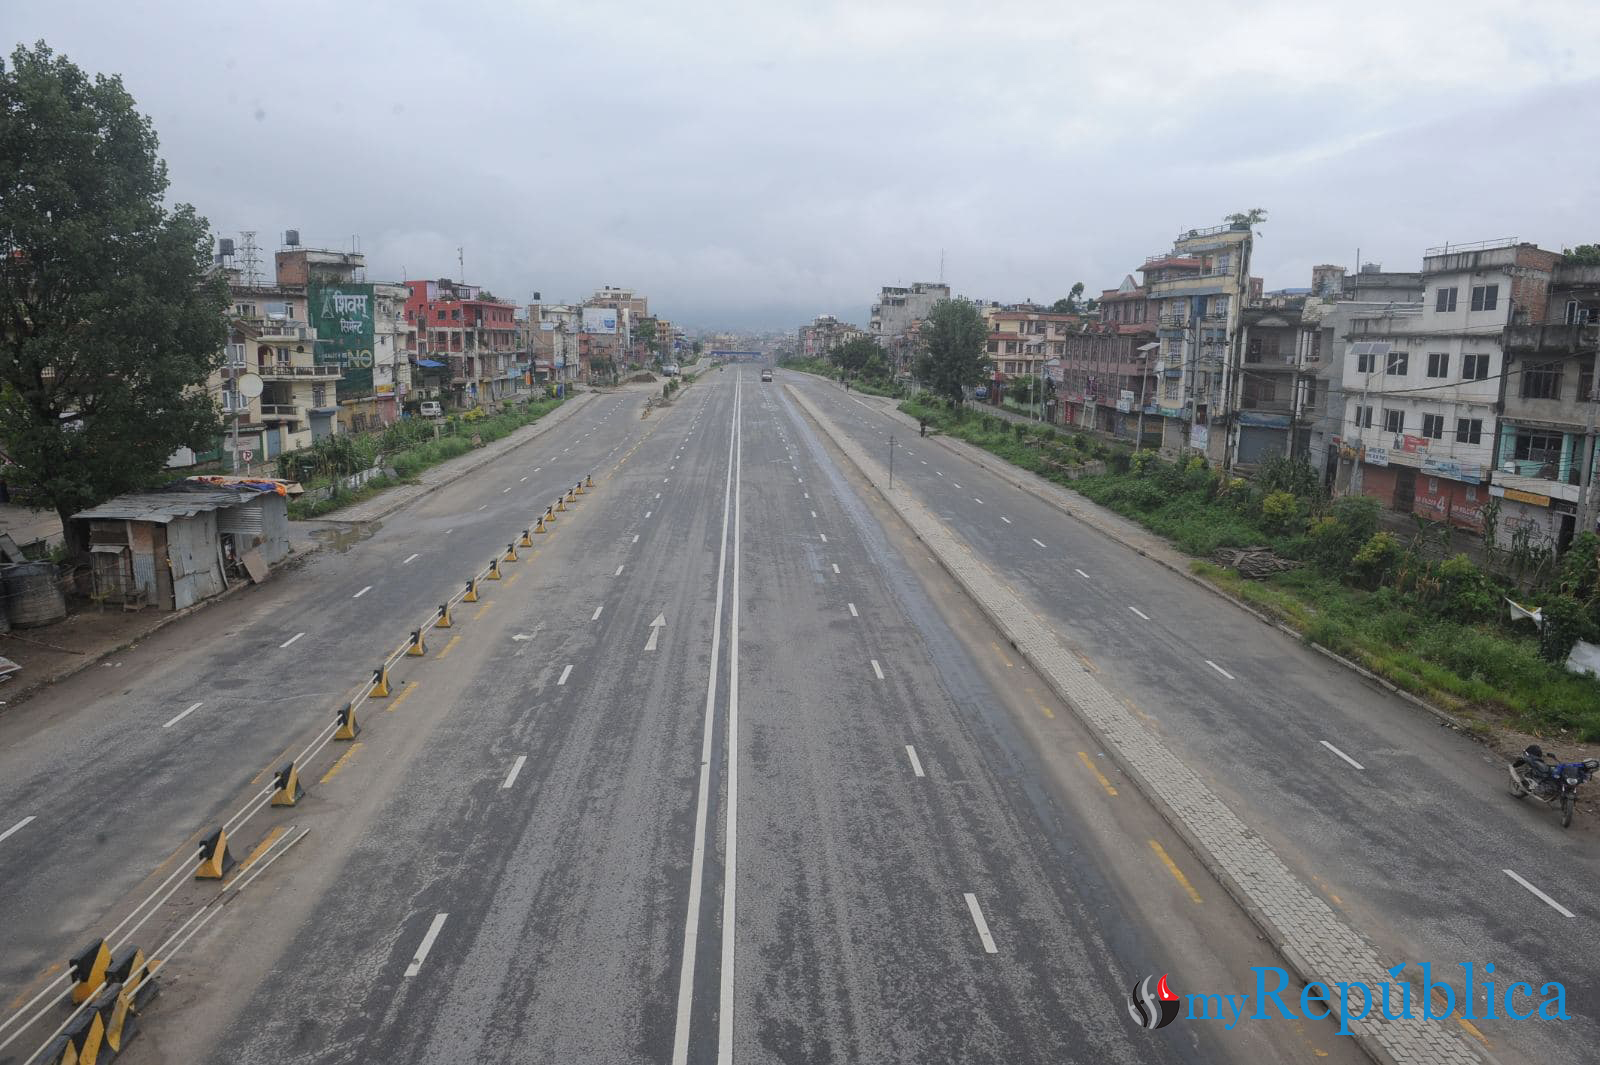 IN PICS: First day of week-long lockdown in Kathmandu Valley